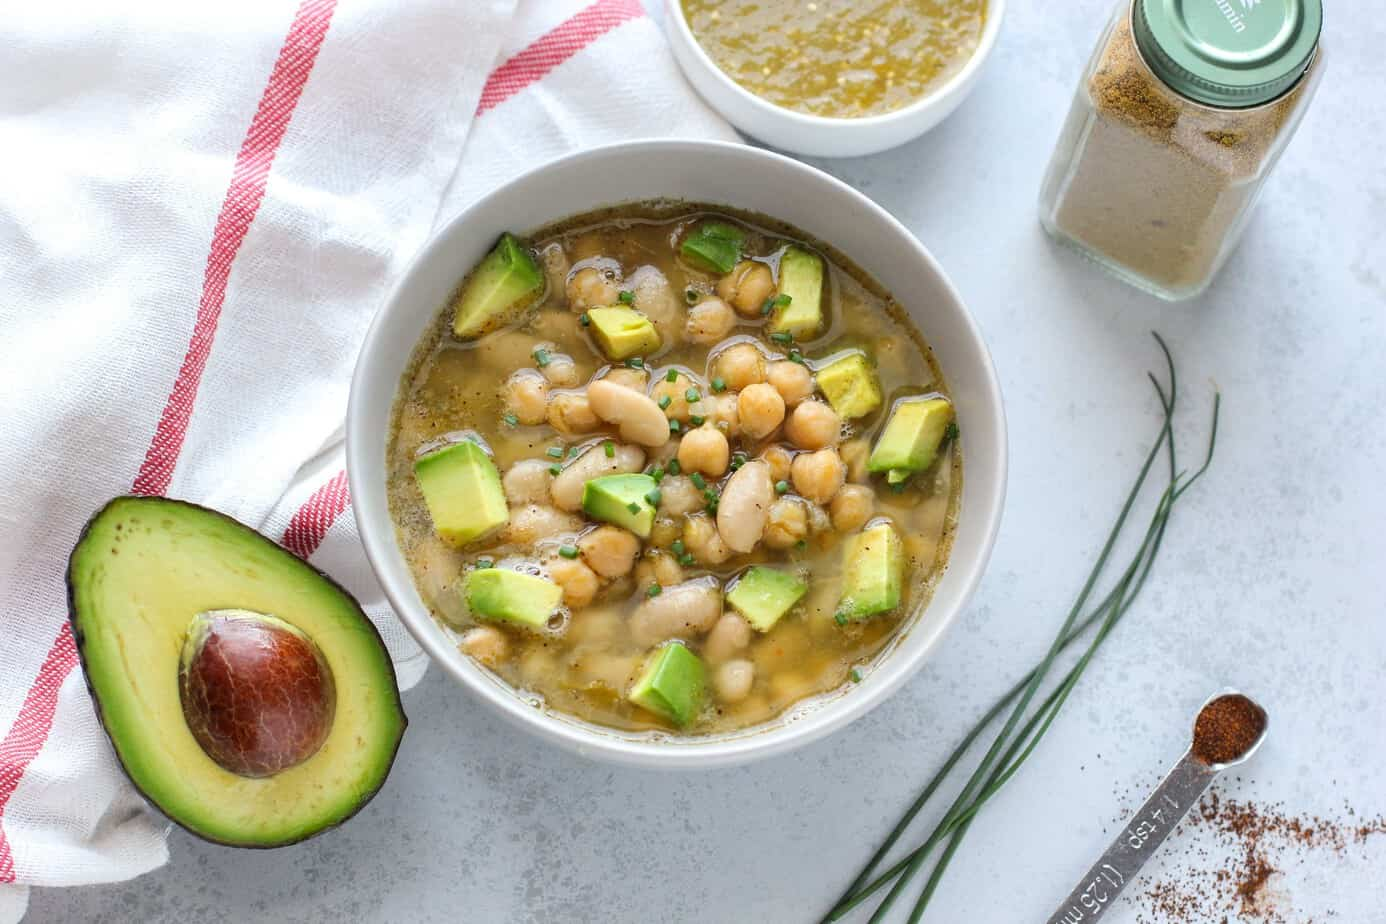 vegan chili verde soup